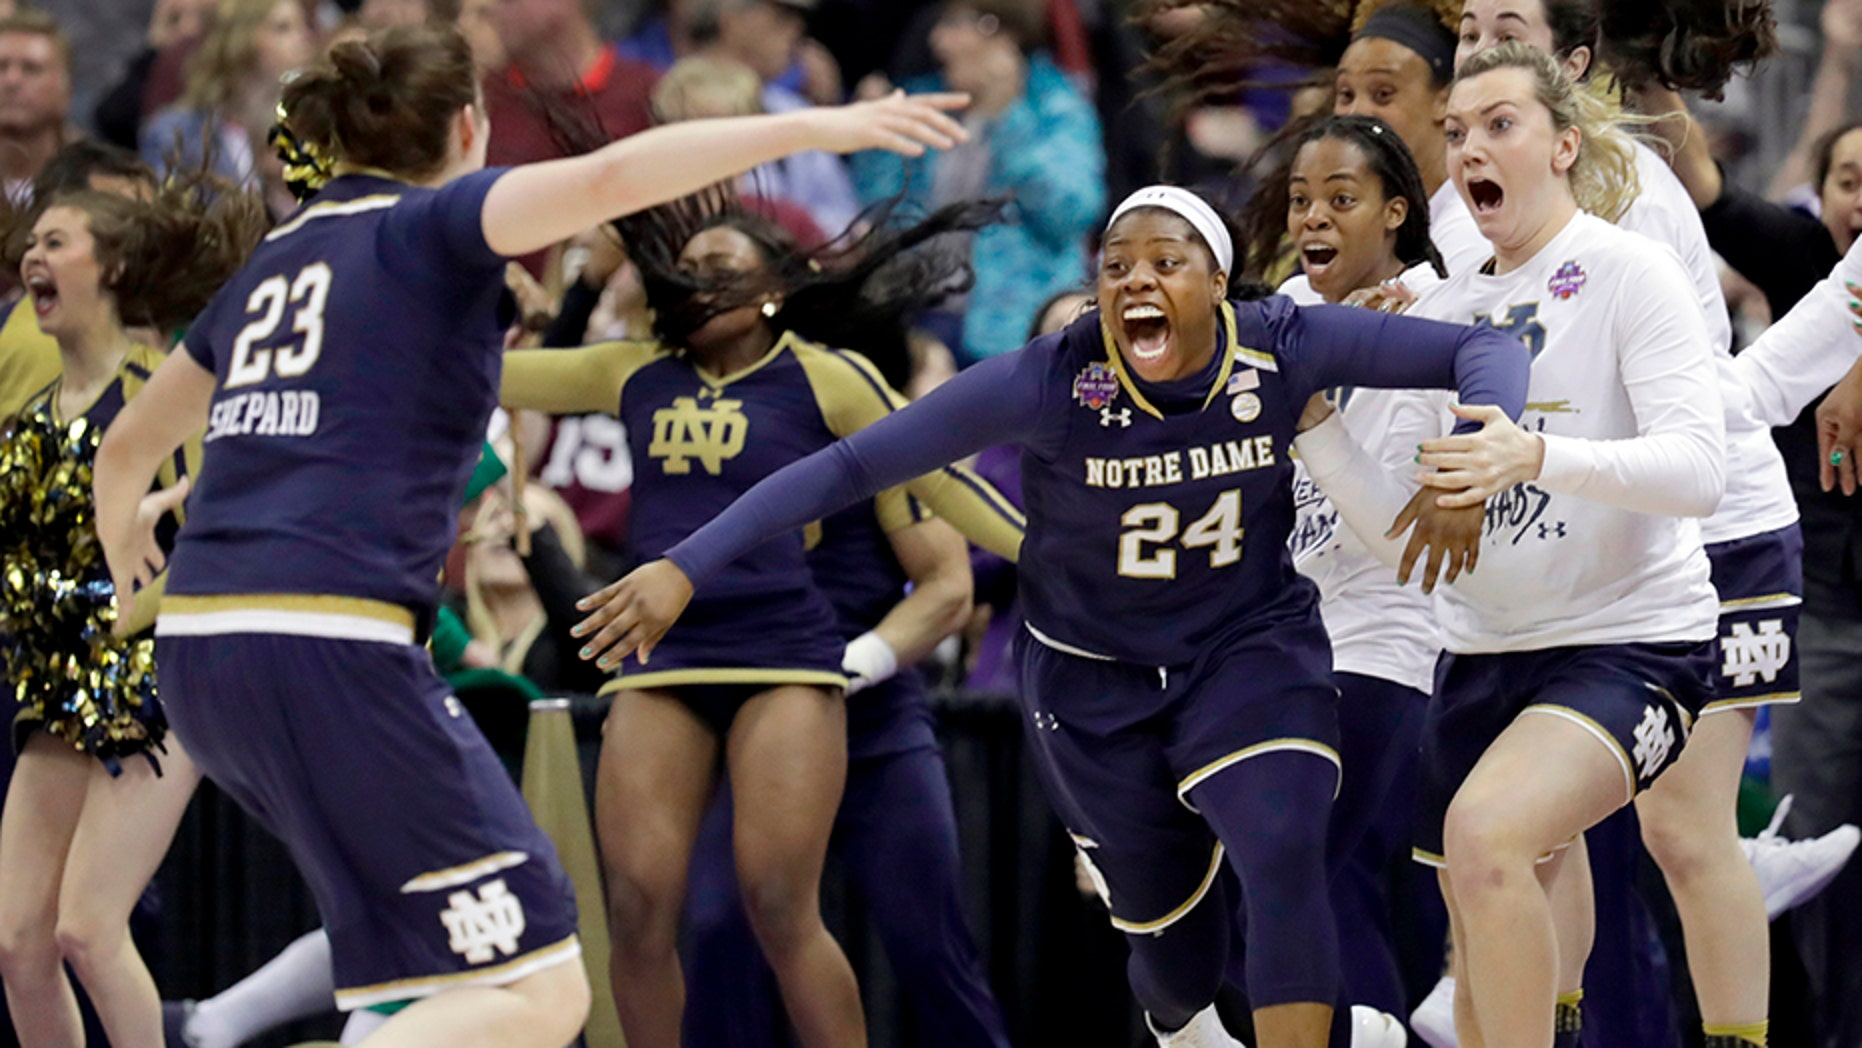 Notre Dame's Arike Ogunbowale (24) clinched the NCAA women's basketball tournament for the Fighting Irish.